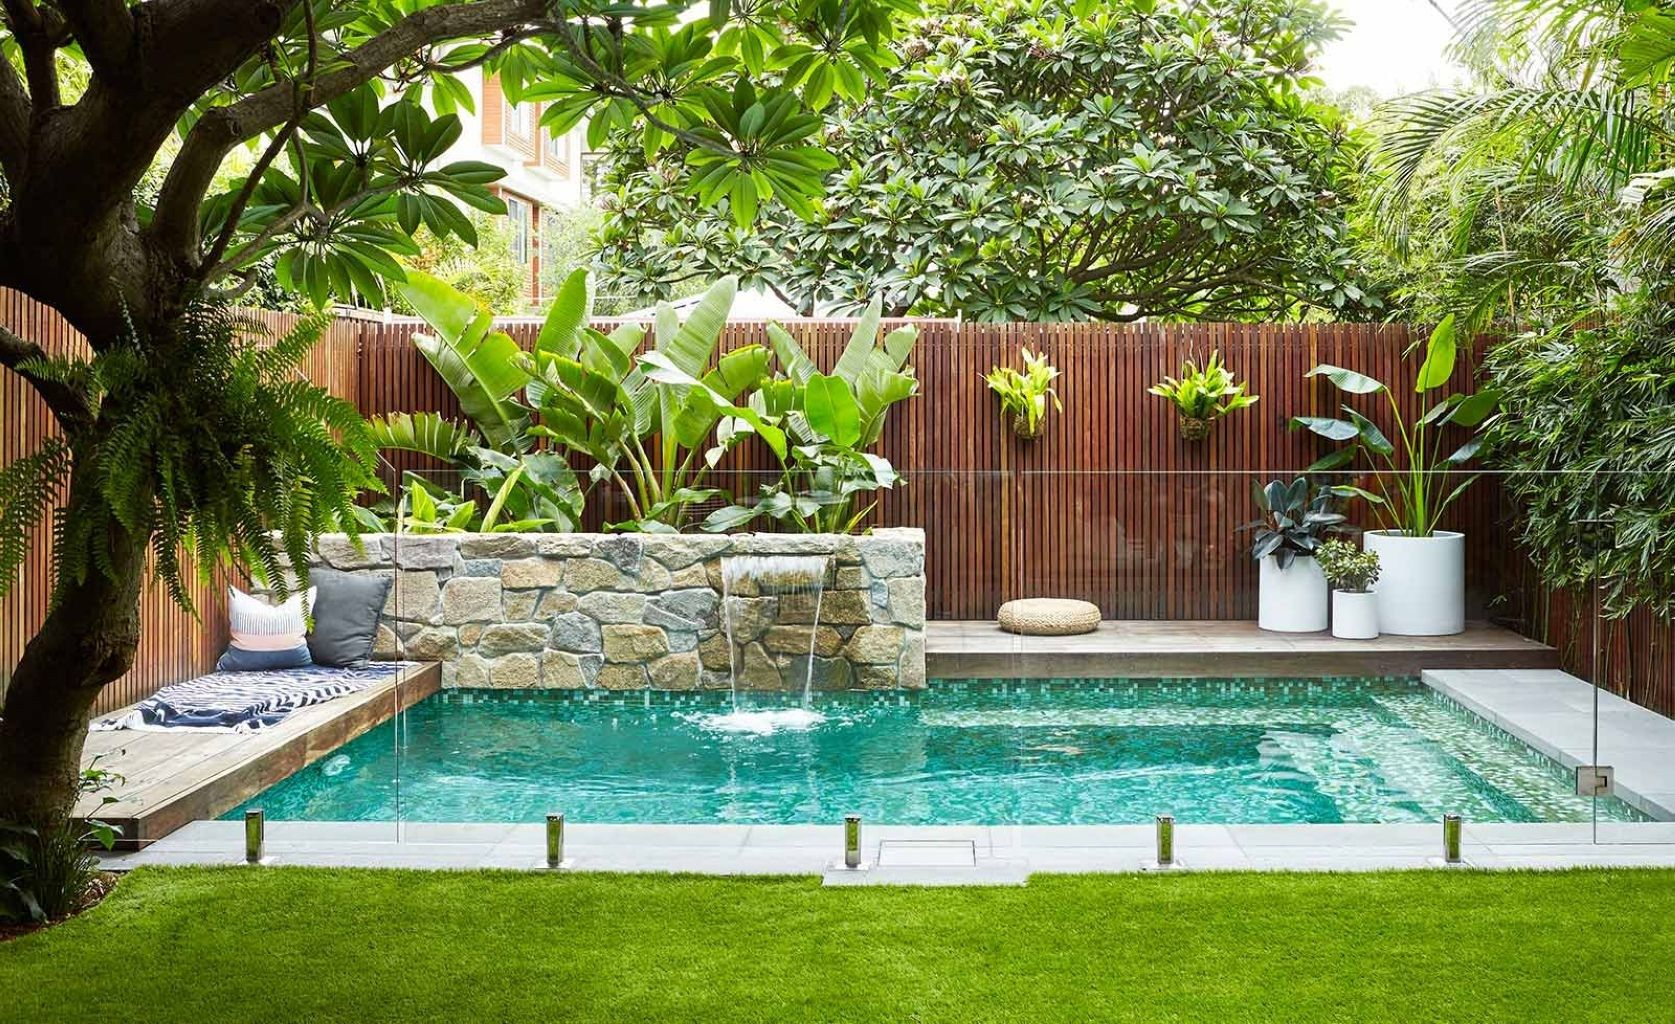 Best Small Pool Ideas For A Small Backyard 35 Toparchitecture Small Backyard Pools Small Pool Design Backyard Pool Designs